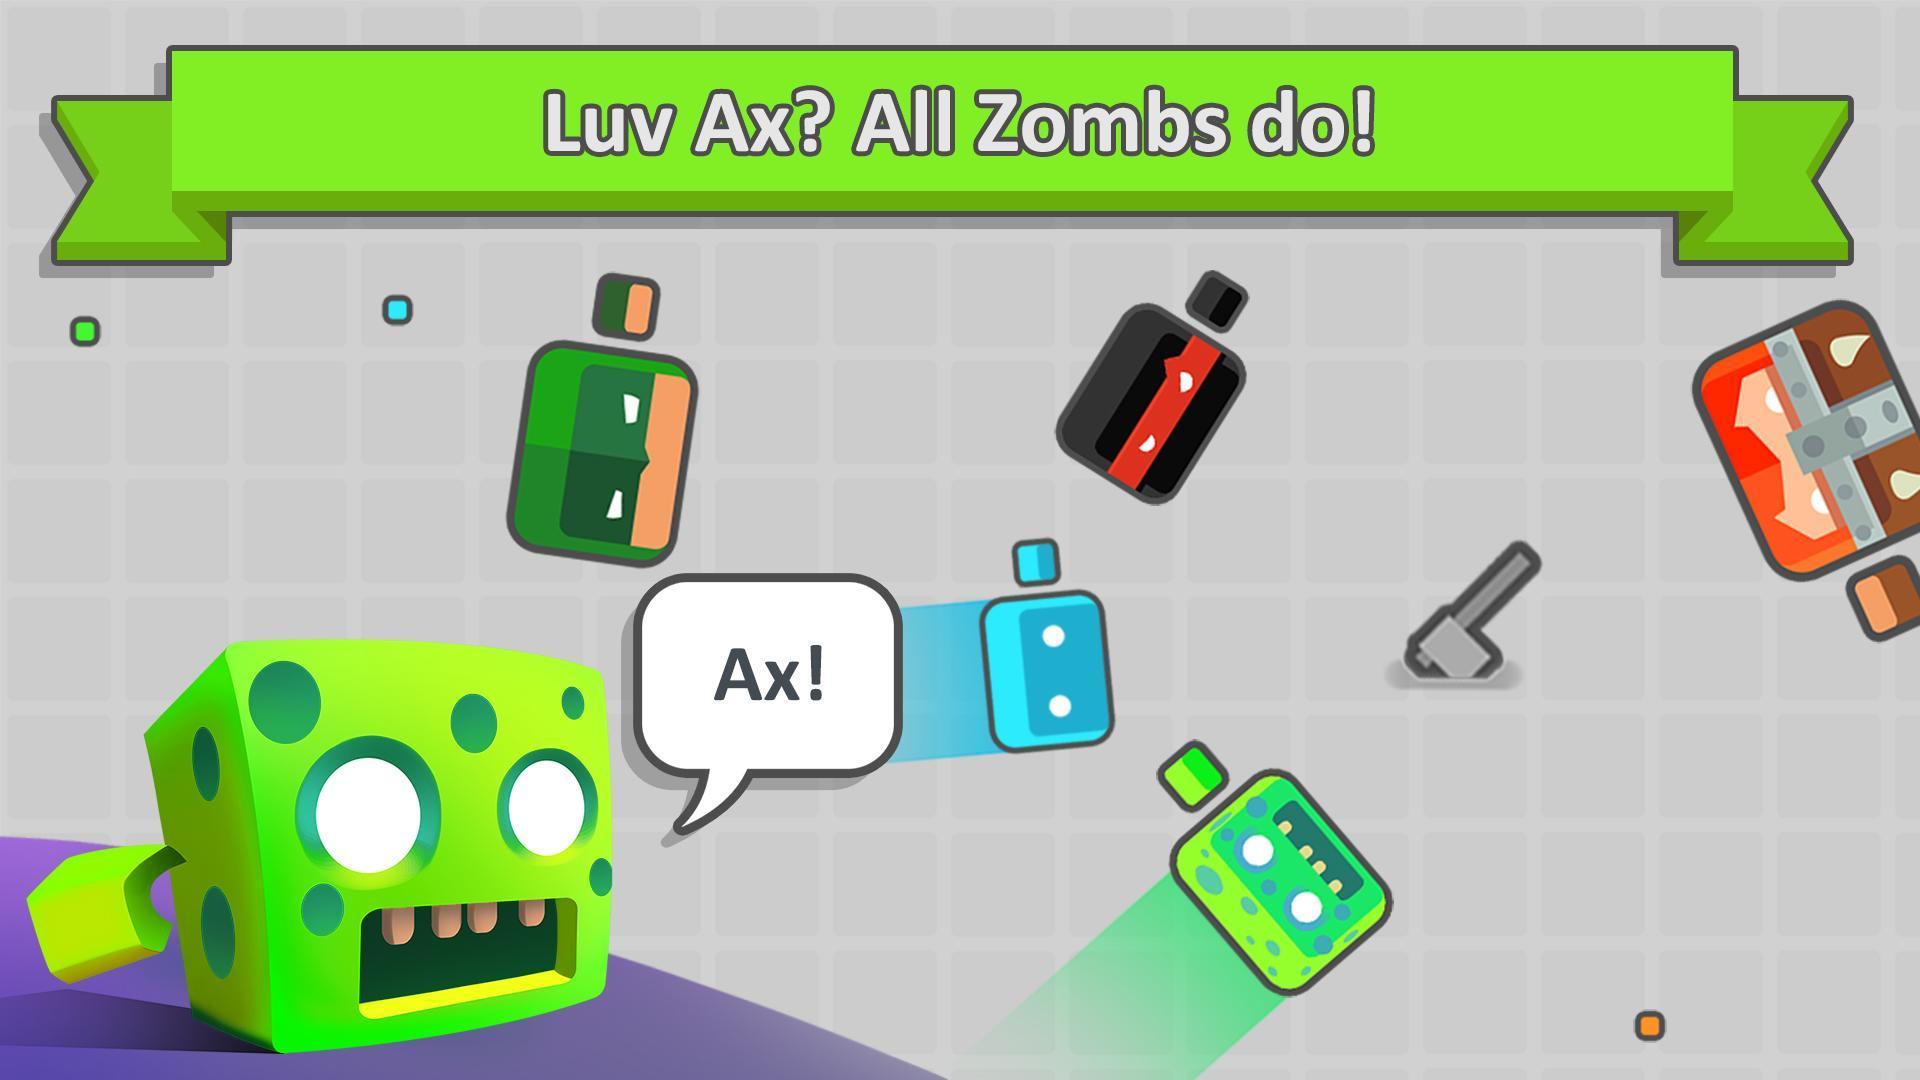 Zlax.io Zombs Luv Ax 1.9.1 Screenshot 13